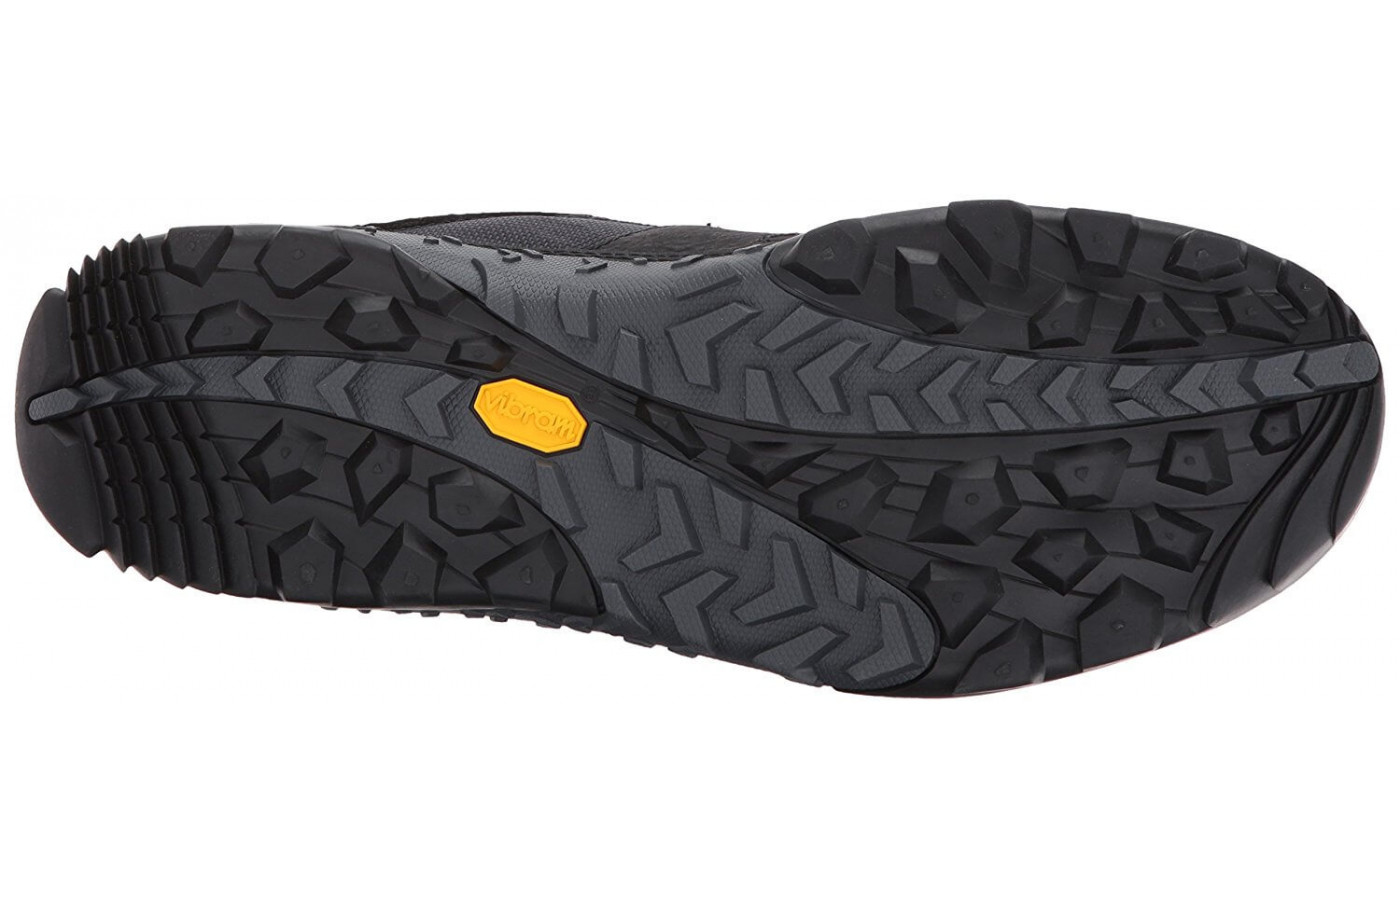 The Merrell Men's Annex Trak Low Shoe offers superior traction